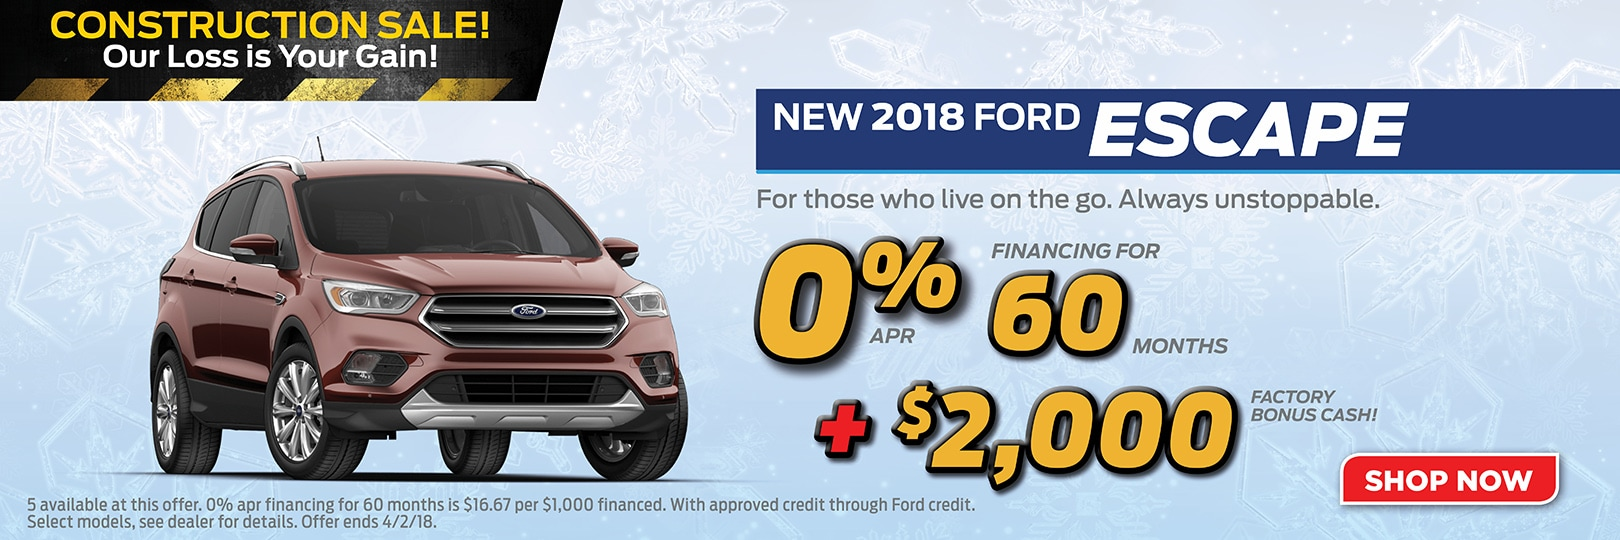 2005 ford escape auto parts by owner vehicle 2018 2019 2020 ford cars. Black Bedroom Furniture Sets. Home Design Ideas